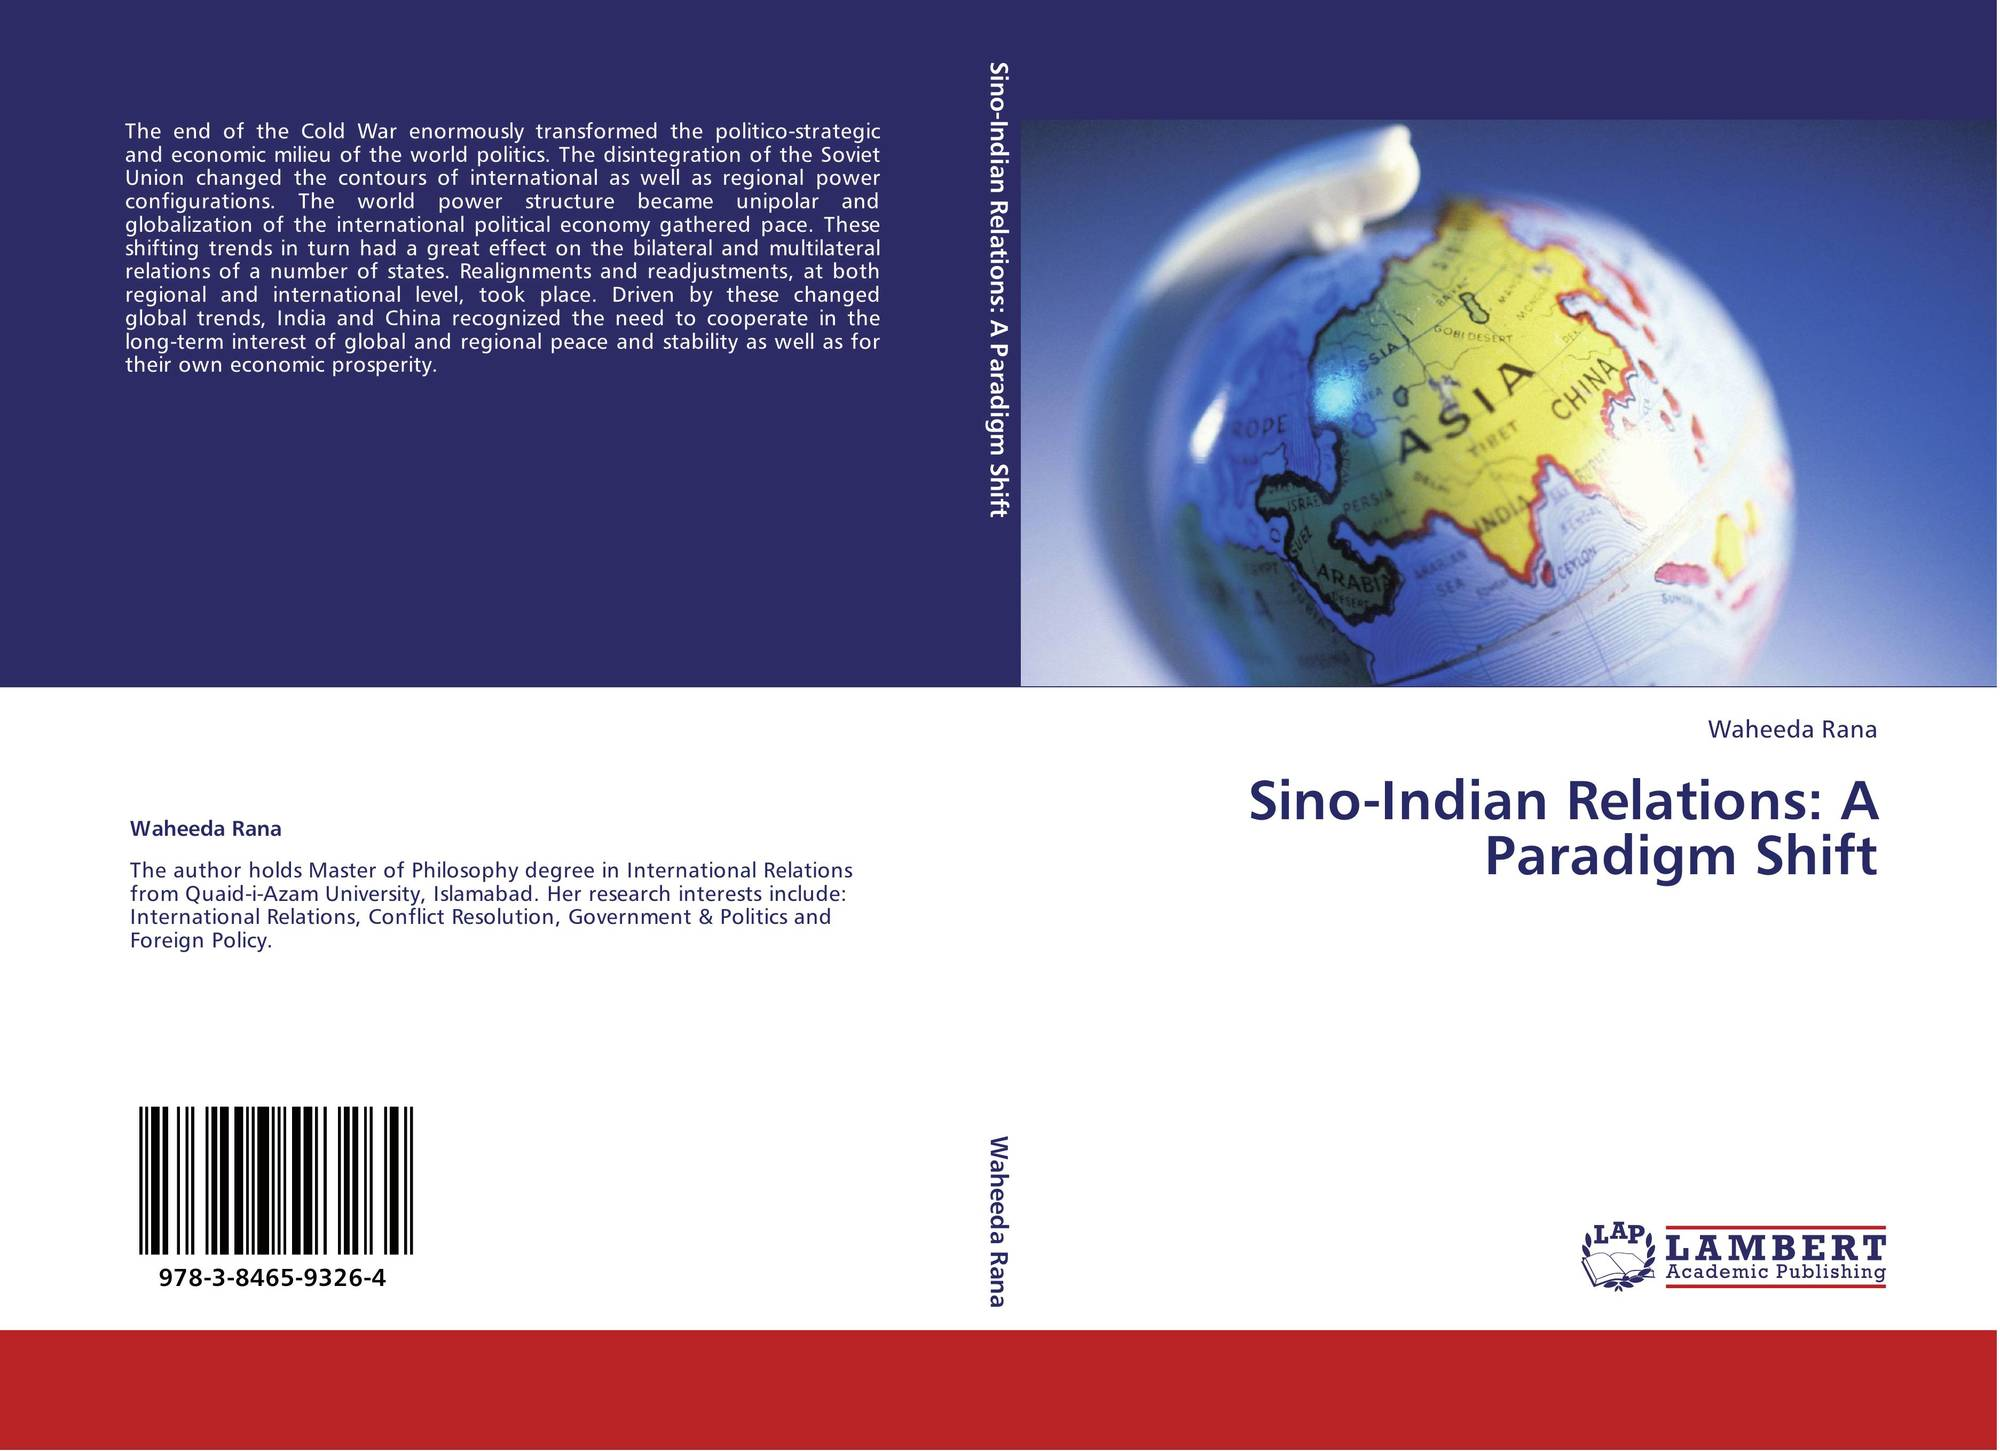 indian banking a paradigm shift Case study of online banking in india: user behaviors and design guidelines  cultural and organizational shift needed by indian banks to draw old customers into.